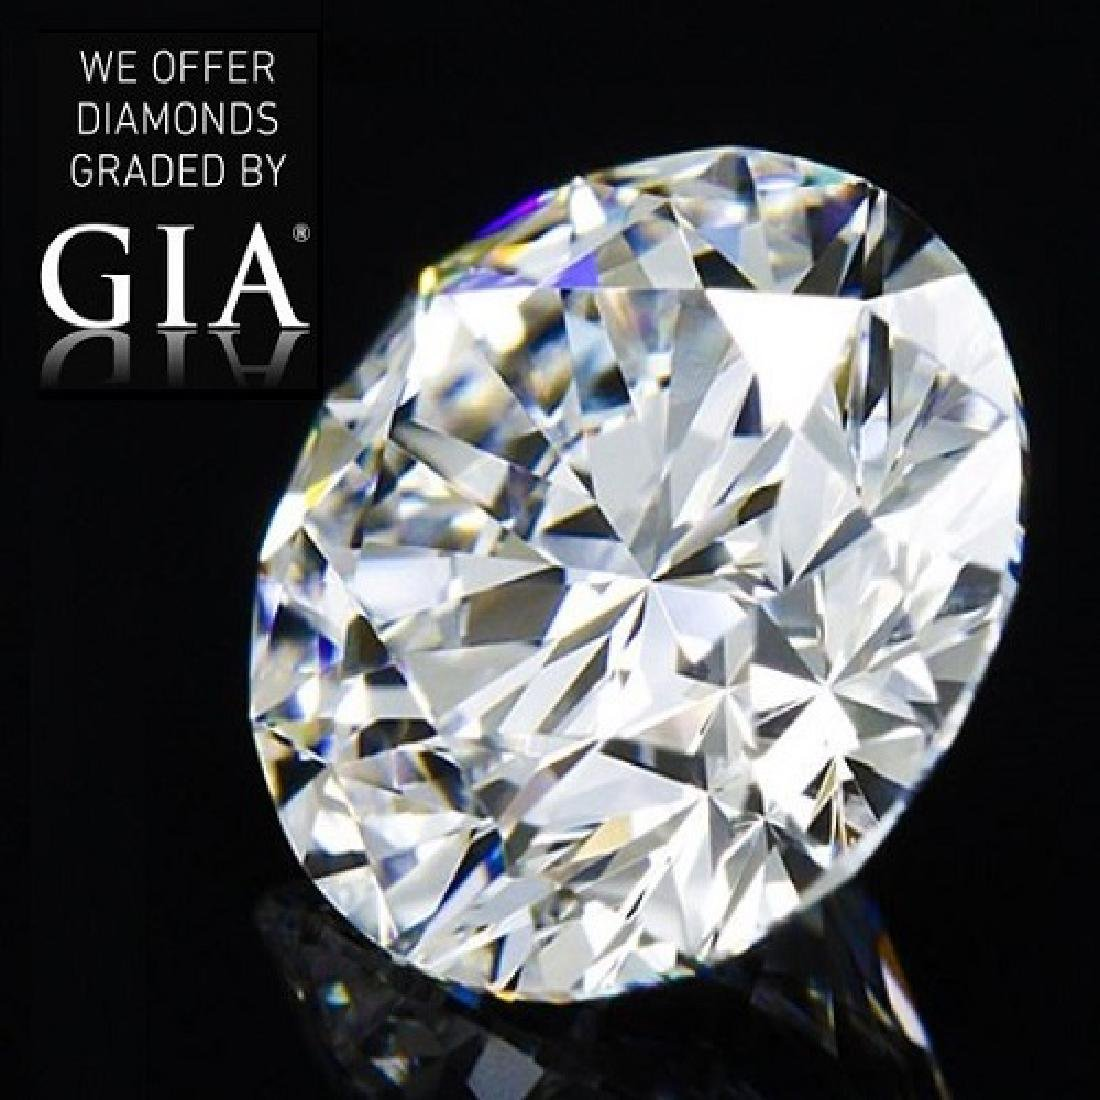 6.02 ct, Color D/VS1, Round cut Diamond